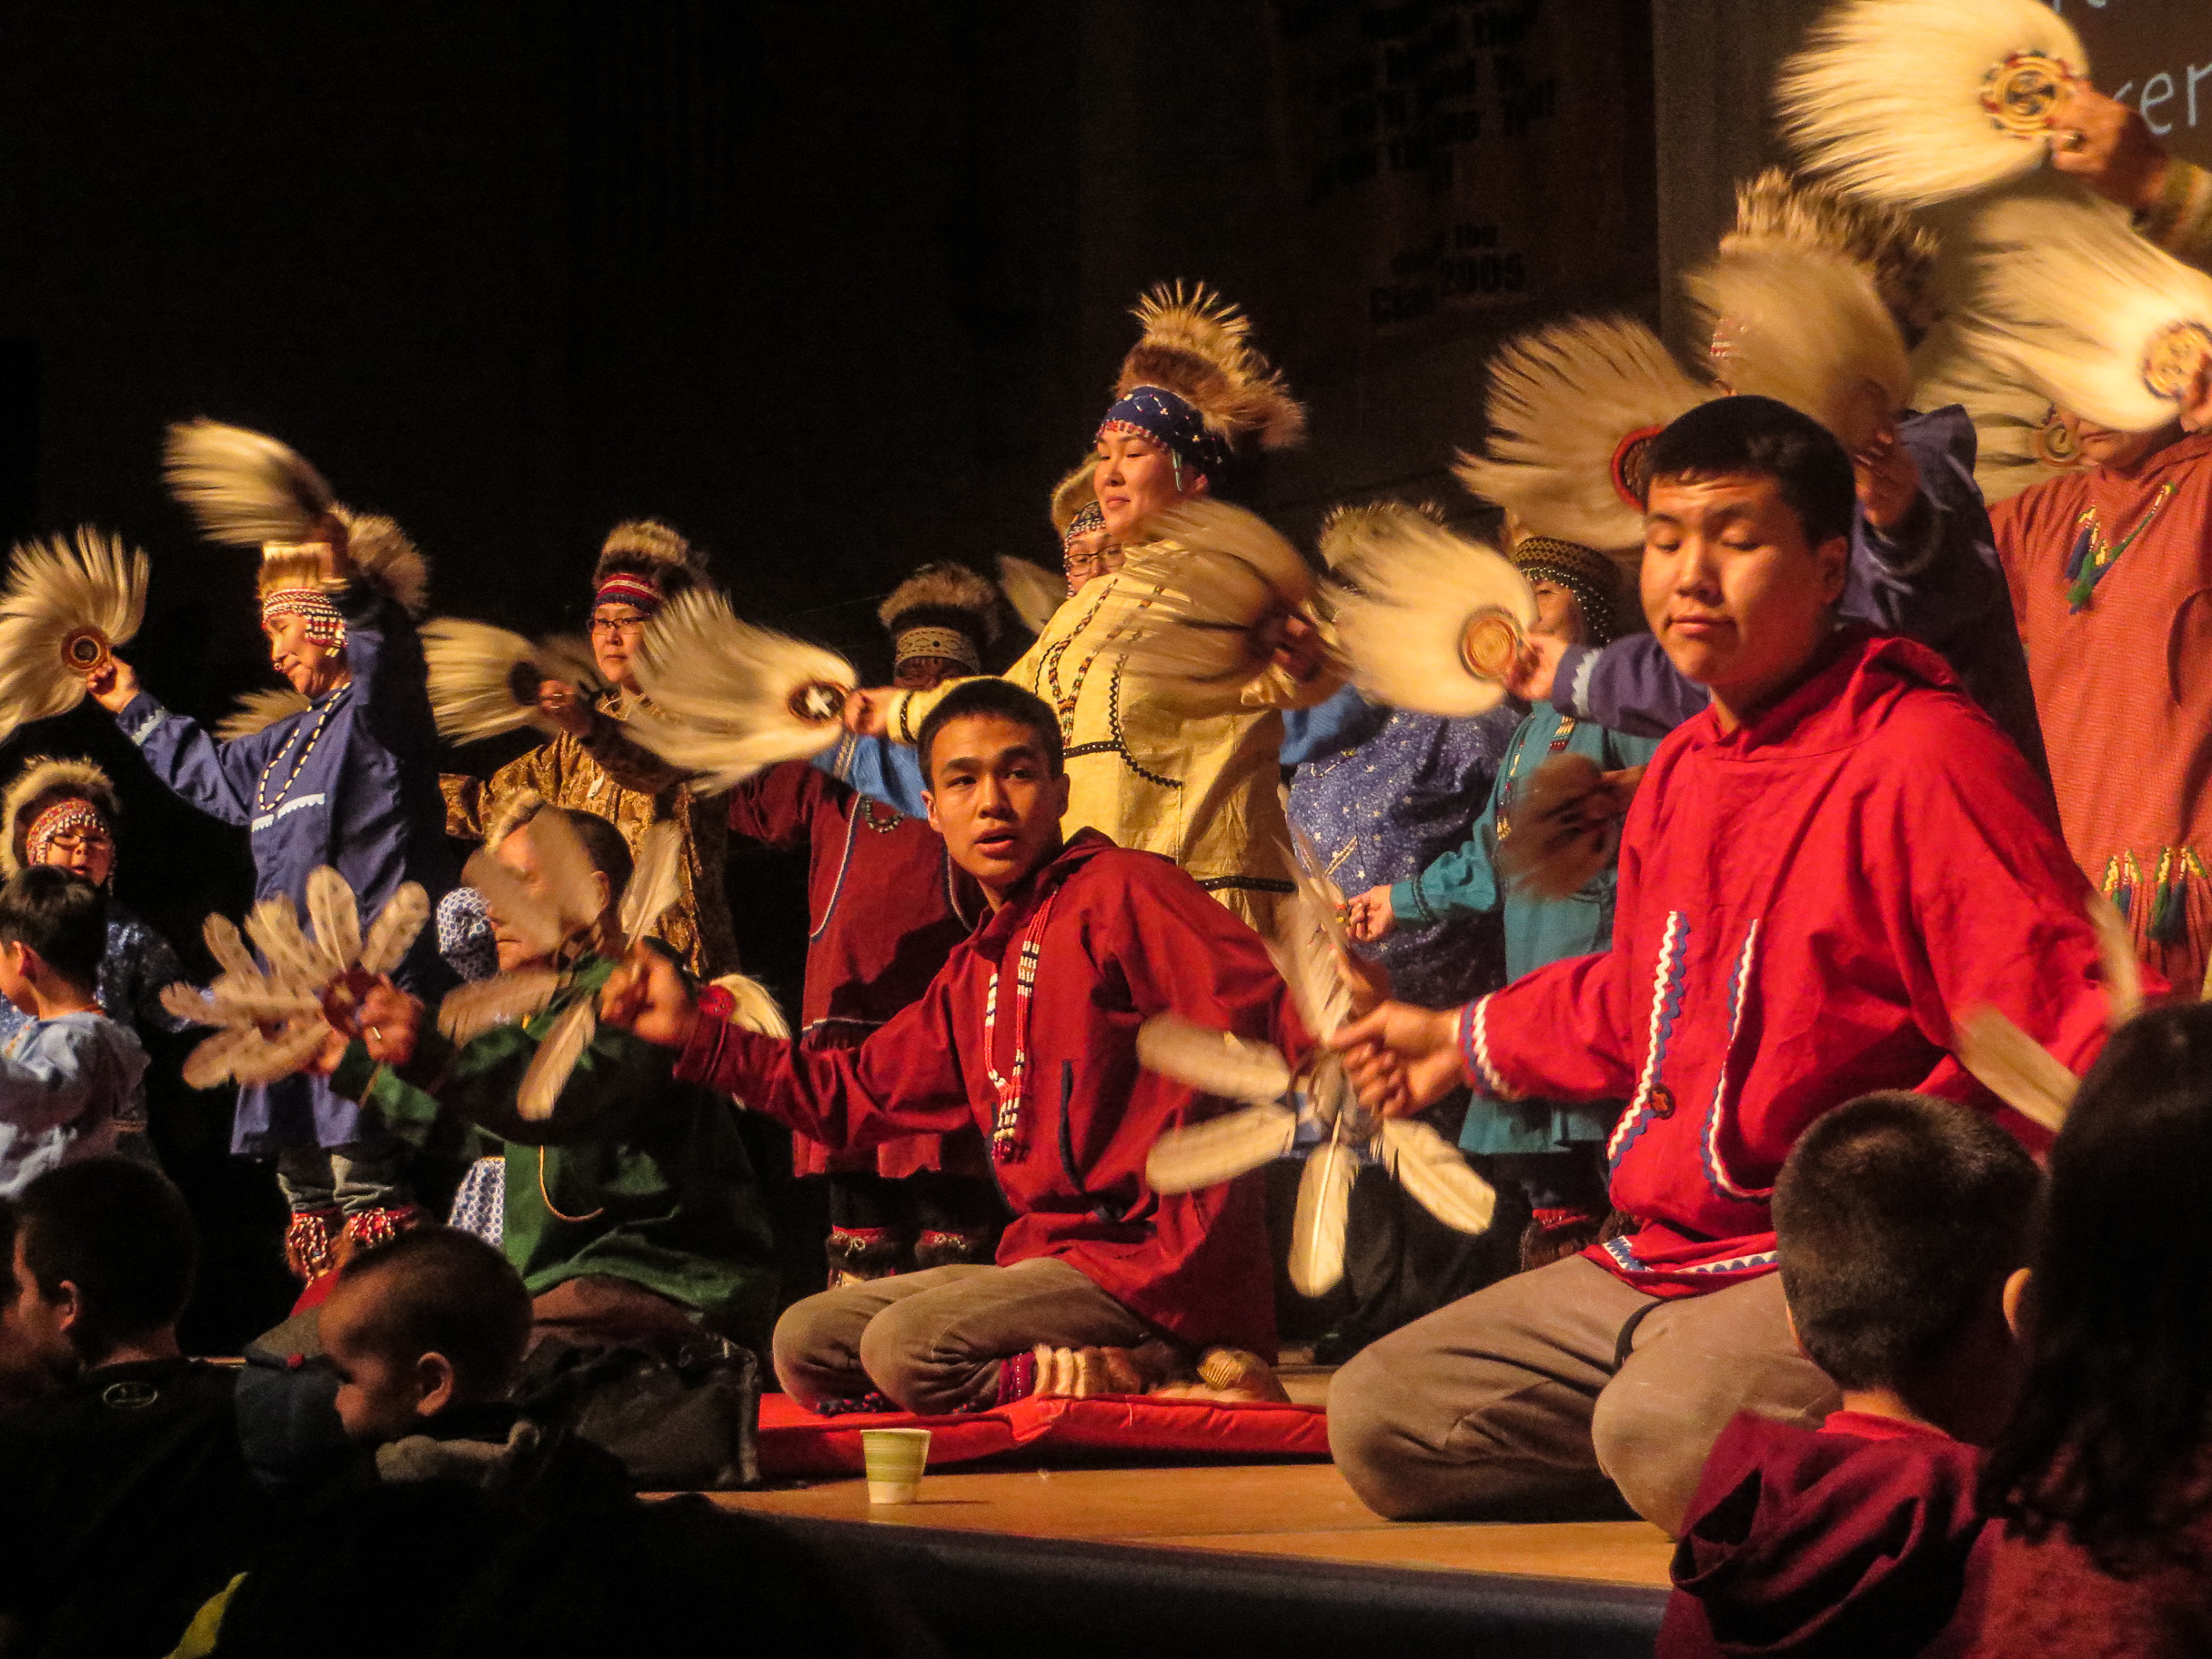 Byron Nicholai performs with the Toksook Bay Traditional Dancers. (Photo by Laura Kraegel/KNOM).